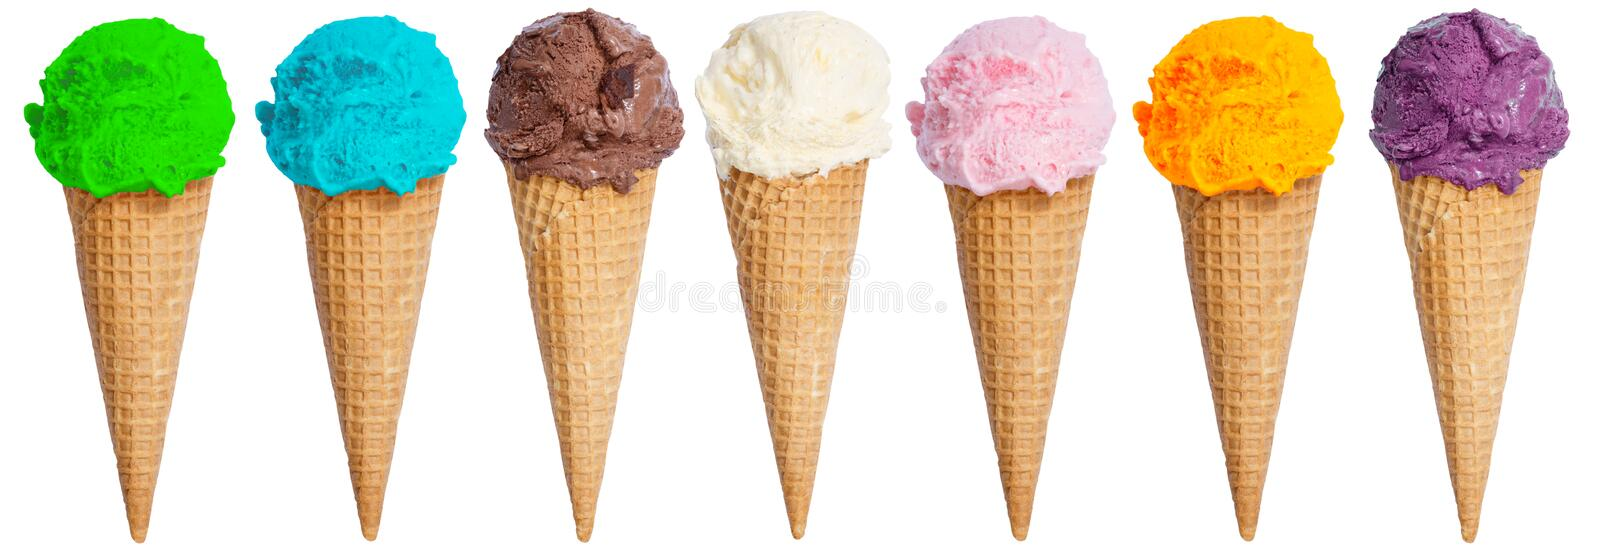 Group of ice cream scoop sundae cone in a row icecream summer is. Olated on a white background royalty free stock images